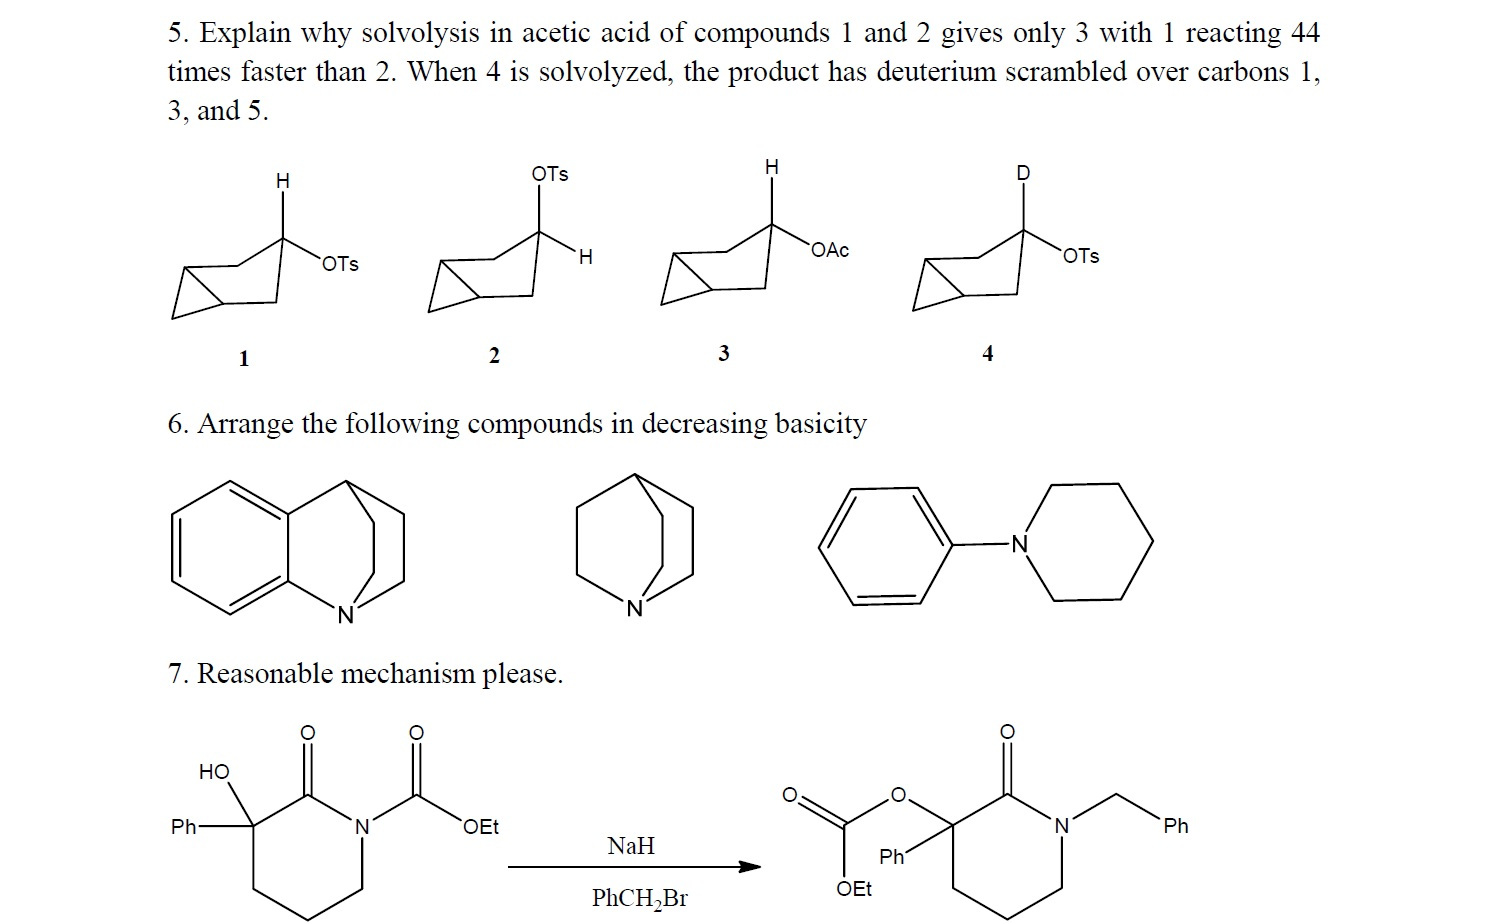 Explain why solvolysis in acetic acid of compounds